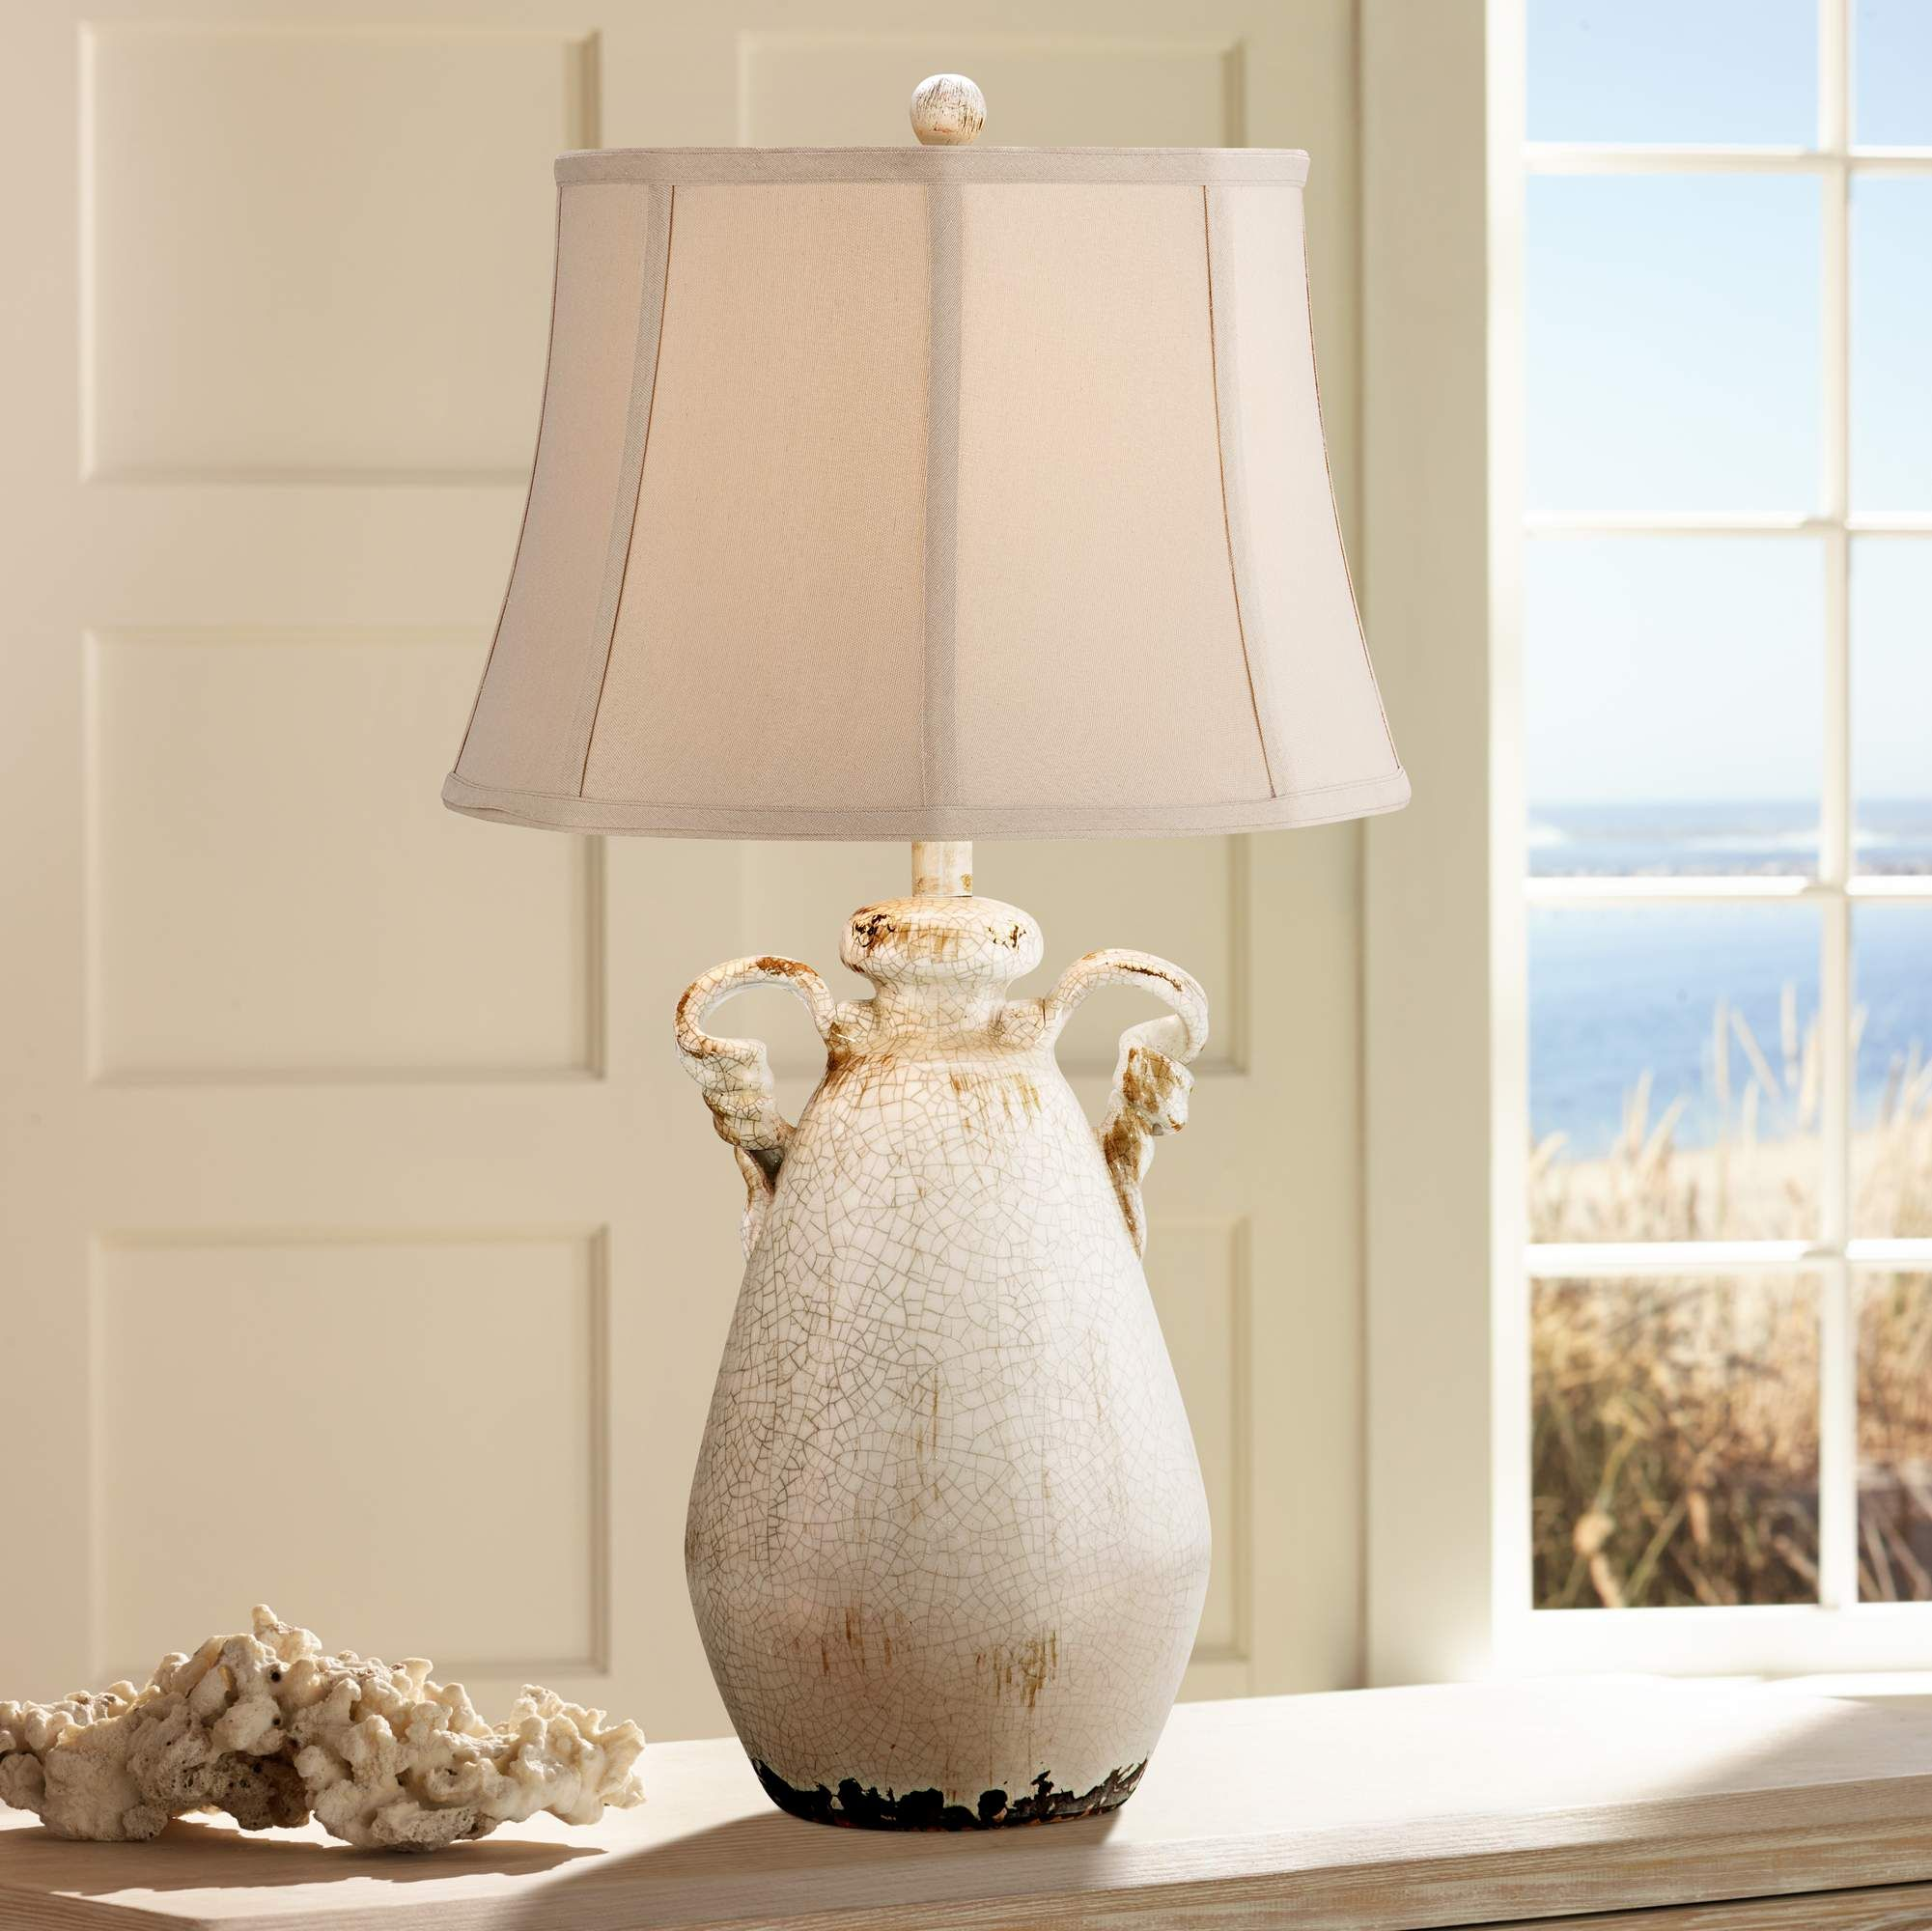 Isabella Ivory Ceramic Table Lamp By Regency Hill 2w497 Lamps Plus Table Lamps Living Room Table Lamp Coastal Bedroom Decorating